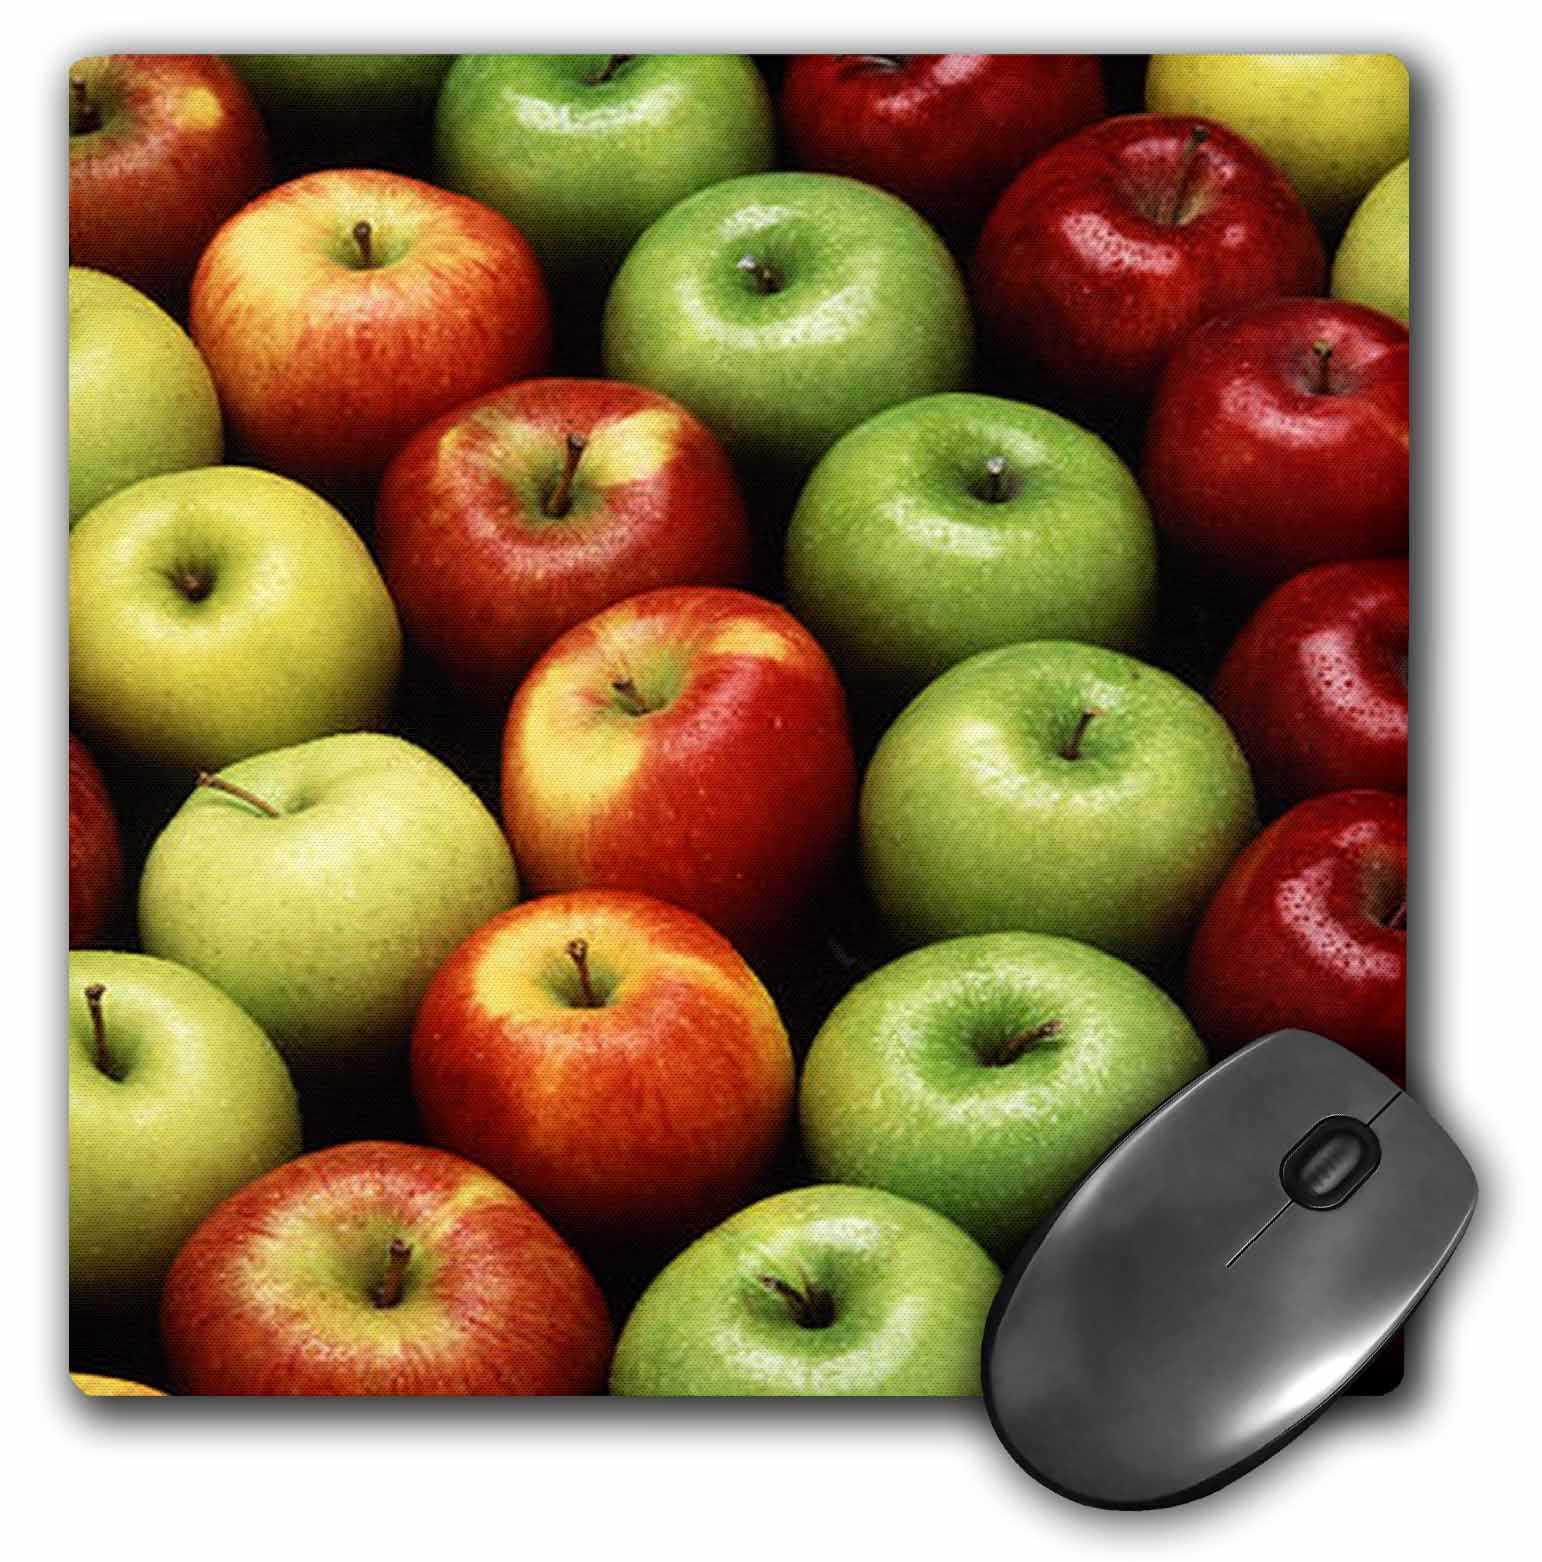 3dRose Food Fruit Apples, Mouse Pad, 8 by 8 inches